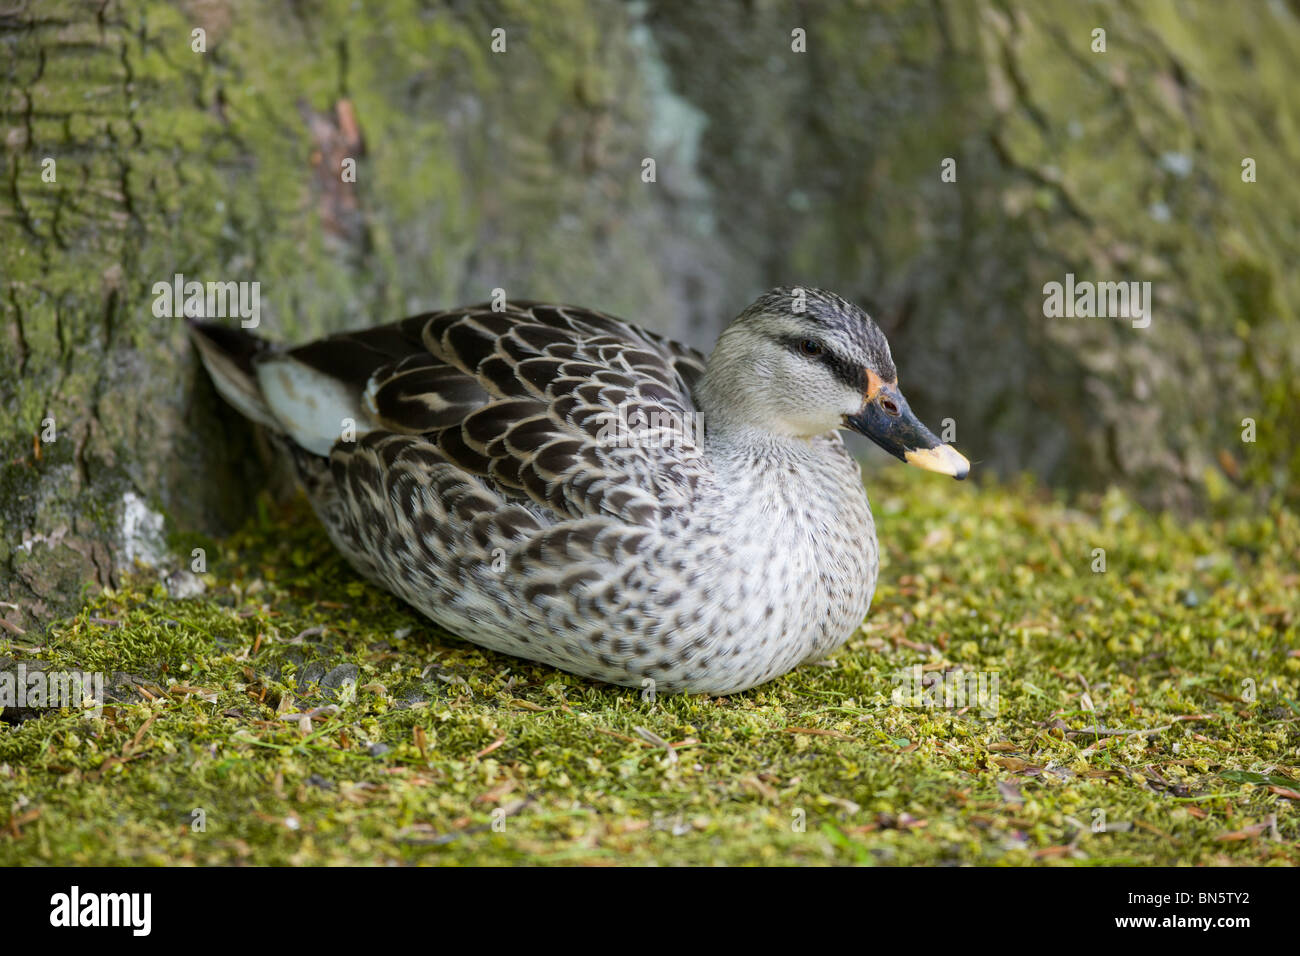 Indian spot billed Duck or Spotbill - Anas poecilorhyncha - Stock Image